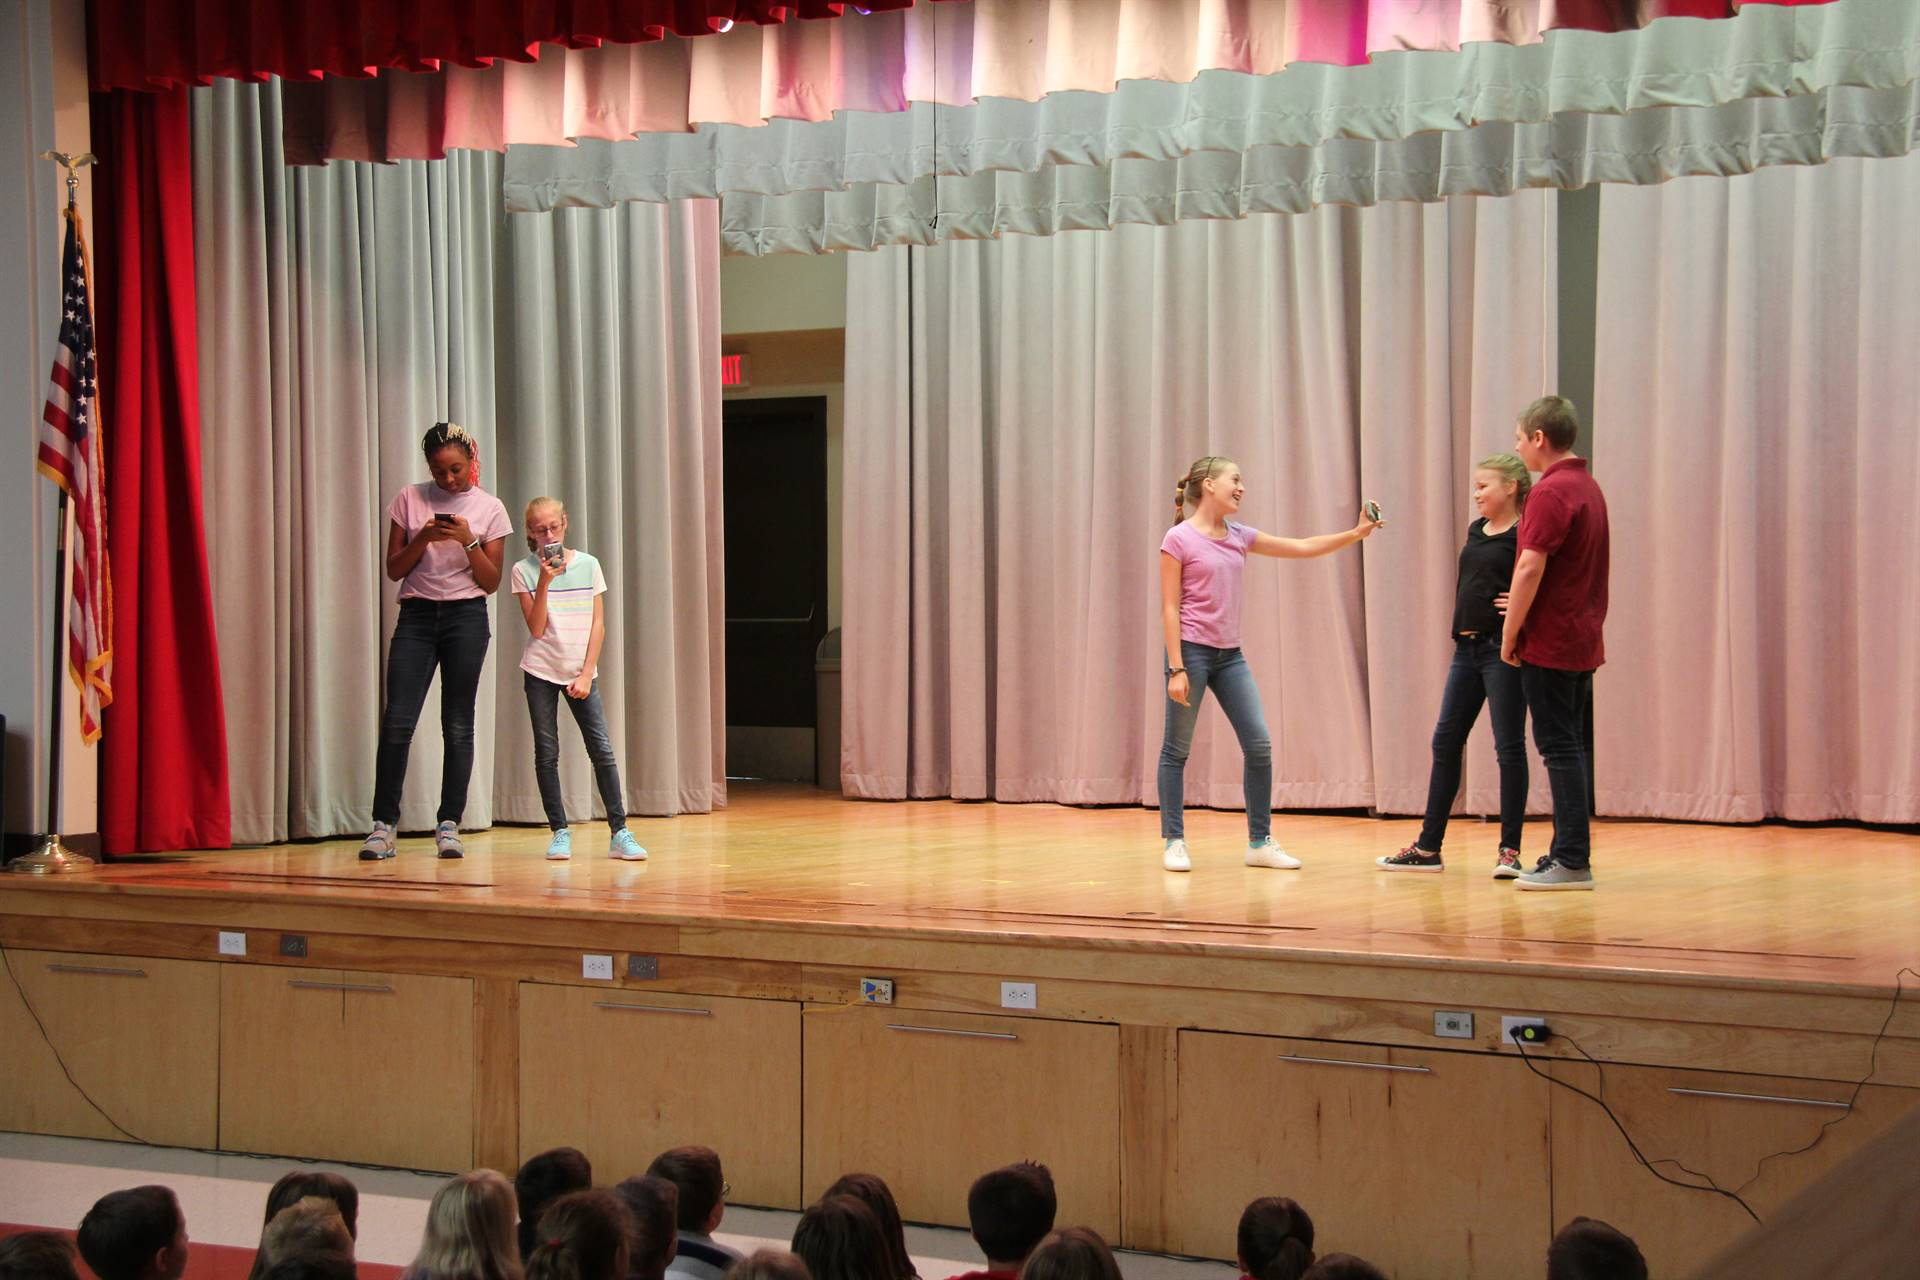 middle school drama club presents play on stage